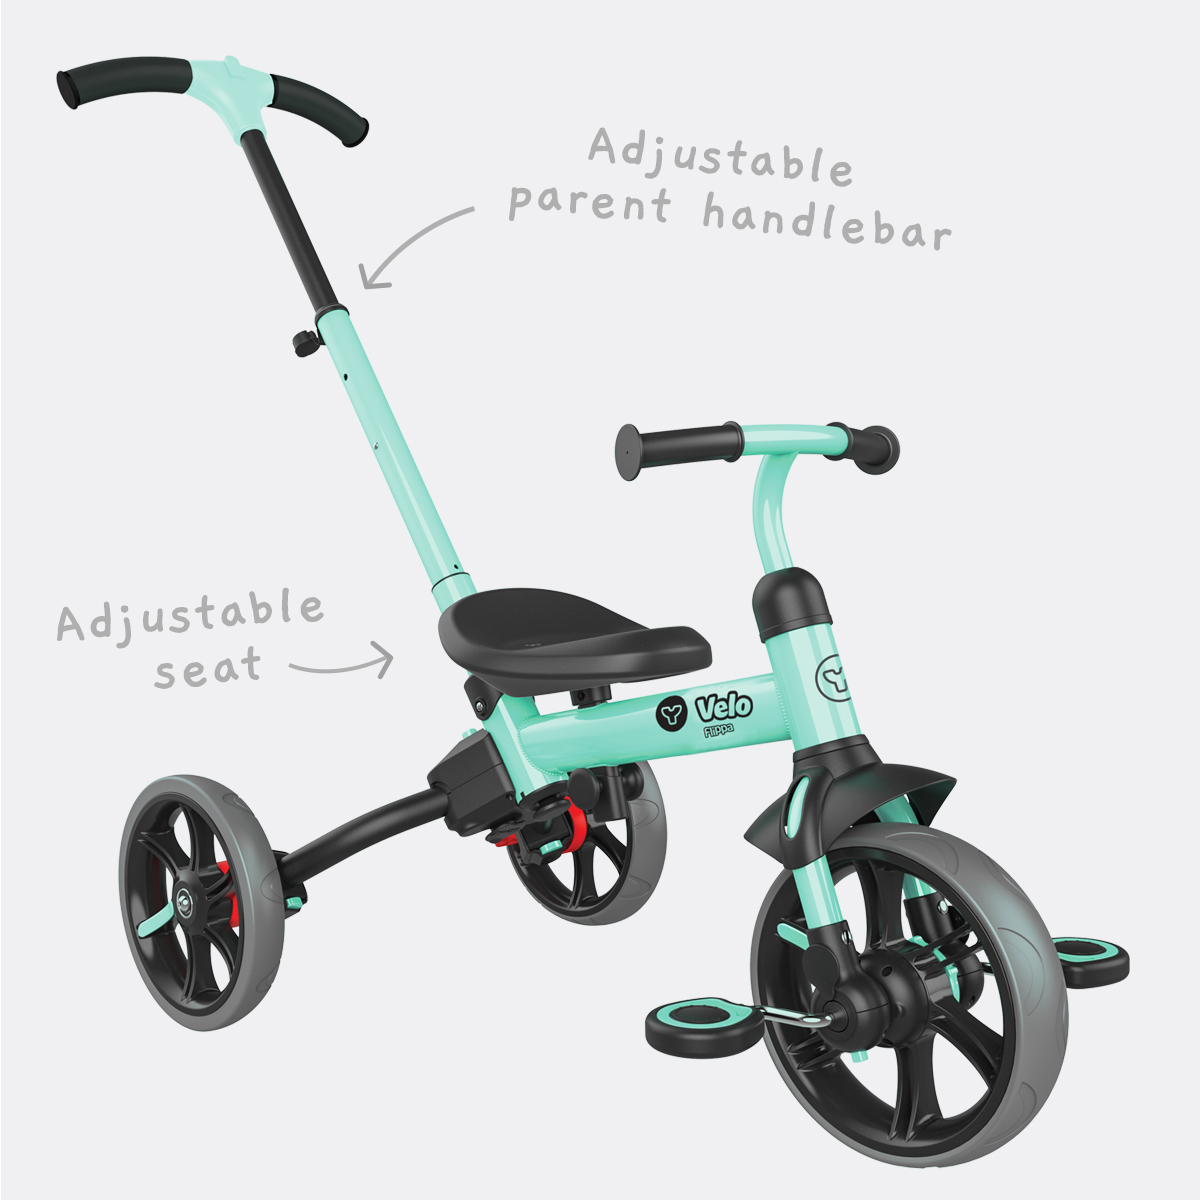 Adjustable parent handlebar and seat